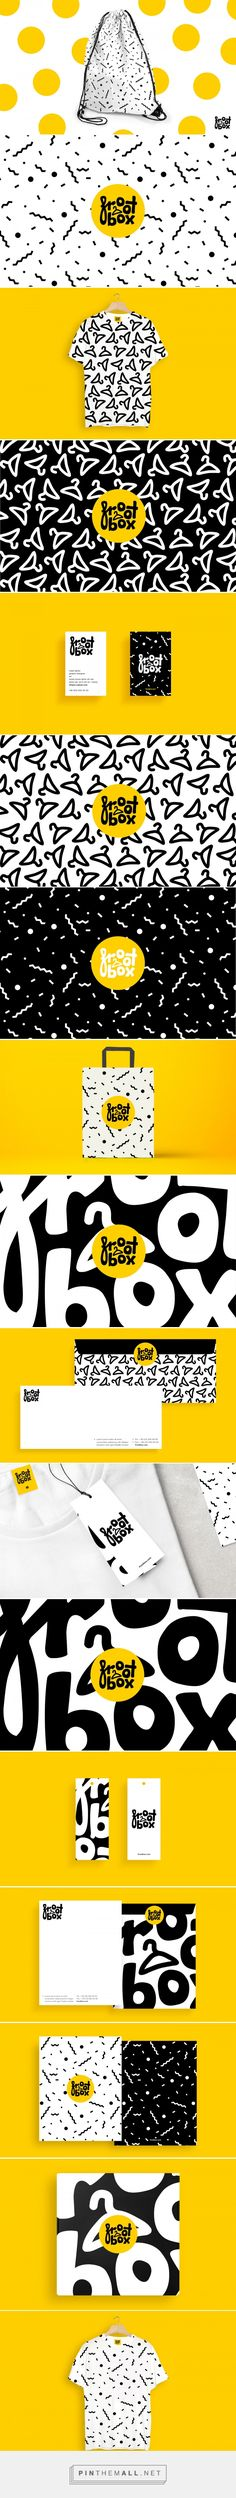 Frootbox Branding by Nuket Guner Corlan | Fivestar Branding – Design and Branding Agency & Inspiration Gallery